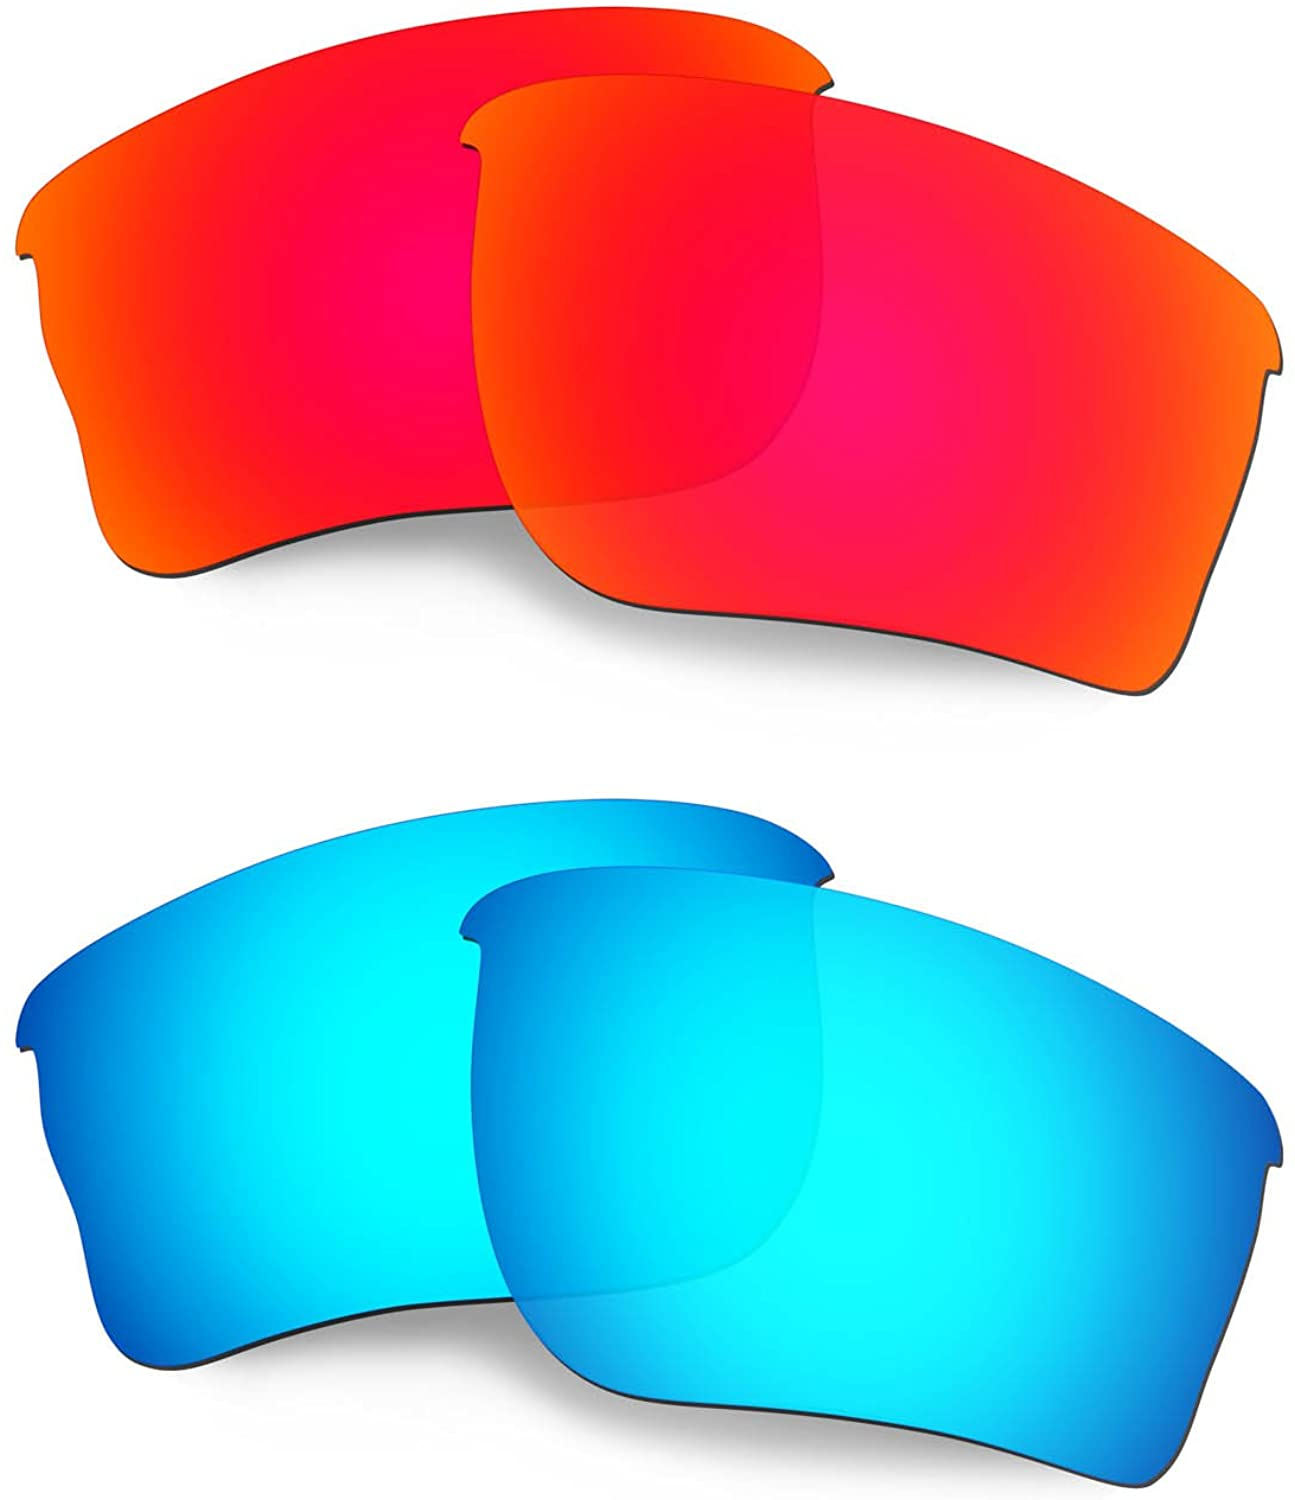 HKUCO Reinforce Replacement Lenses for Oakley Quarter Jacket Sunglasses Red/Blue Polarized